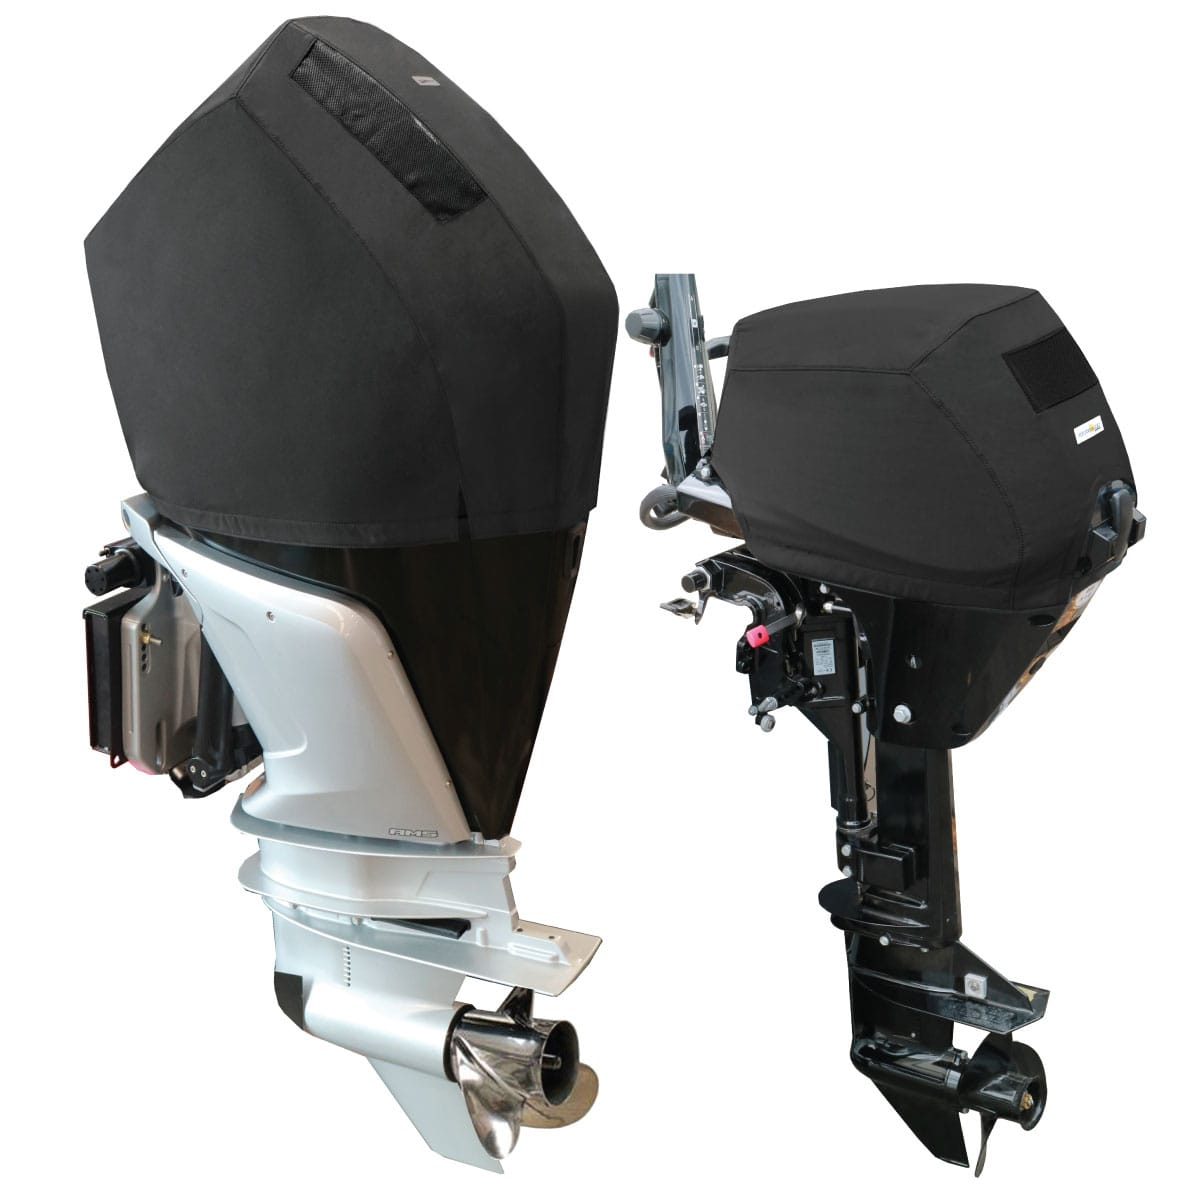 Vented Covers For Mercury Outboards Oceansouth